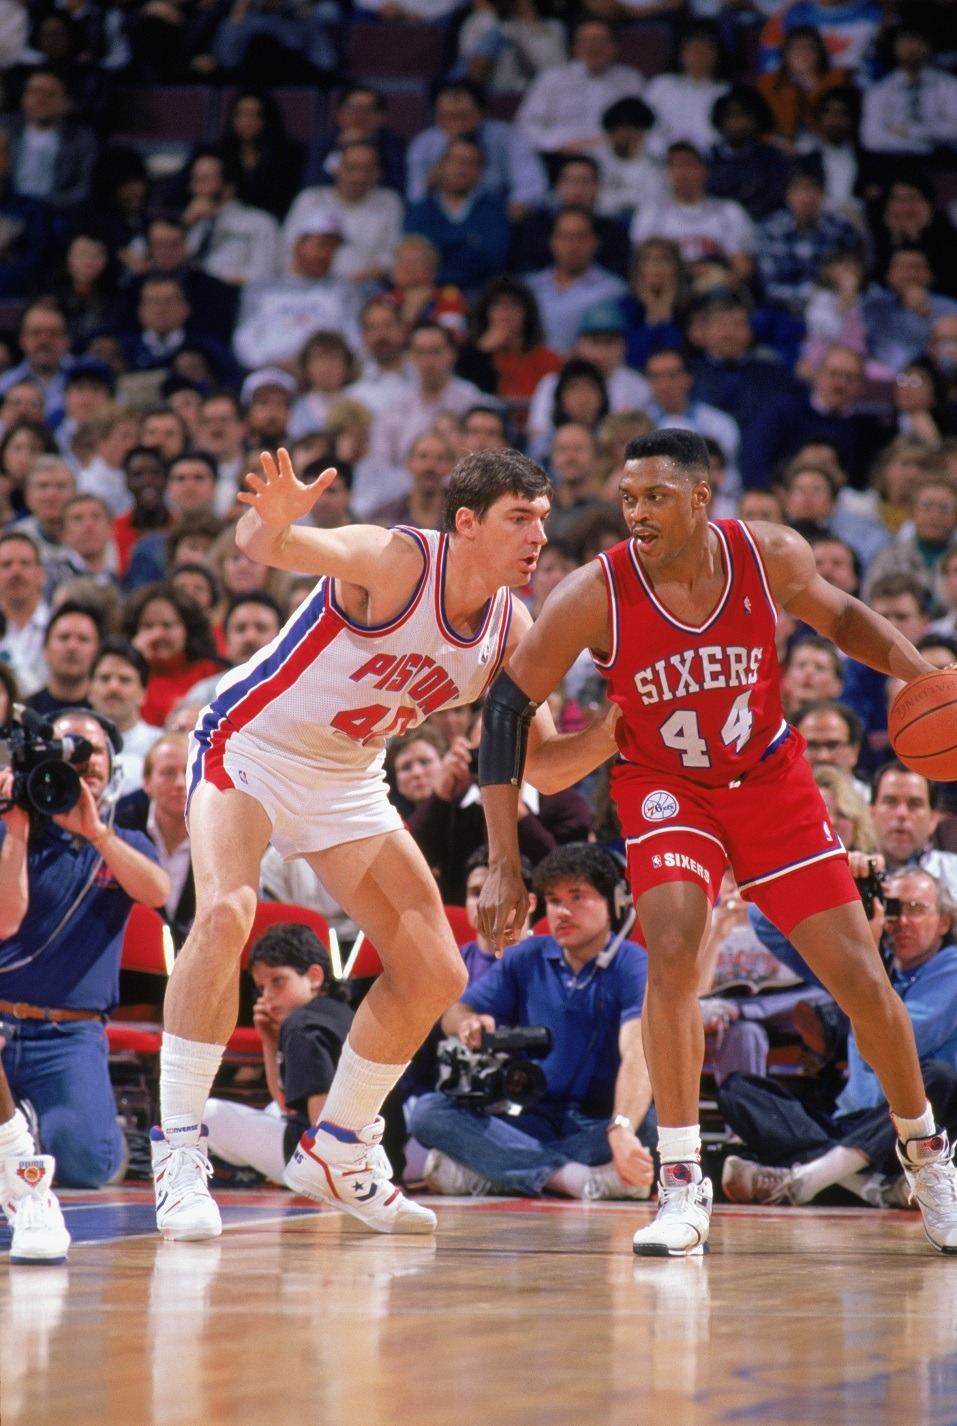 Rick Mahorn of the Philadelphia 76ers is defended by Bill Laimbeer of the Detroit Pistons.